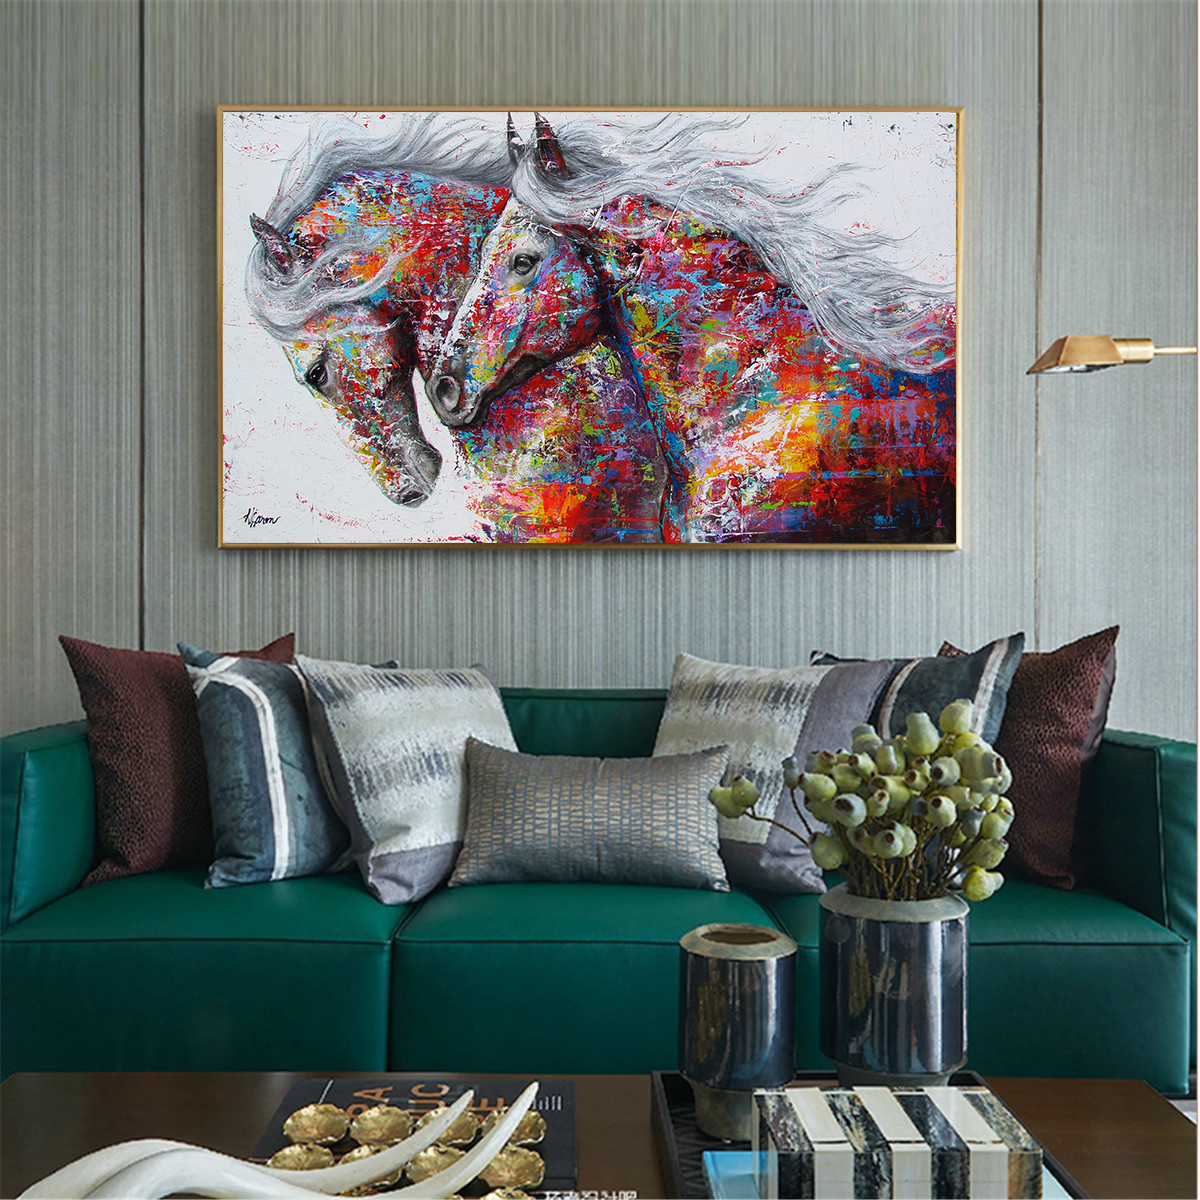 large size nostalgic painting canvas prints wall art craft Poster Nordic About horse decoration for bar cafe quadro